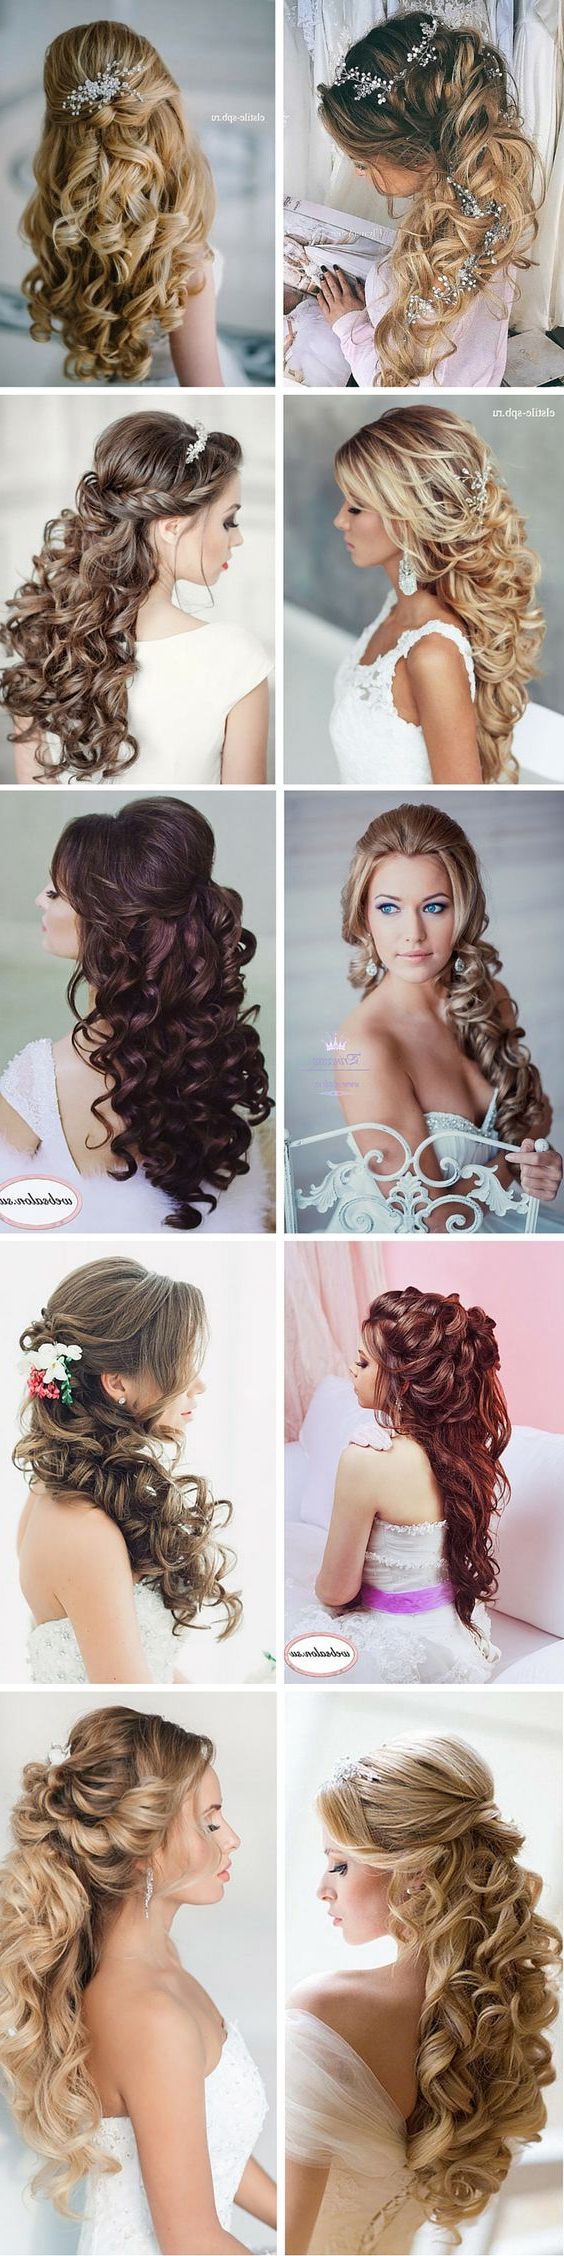 elegant-curly-half-up-half-down-wedding-hairstyles